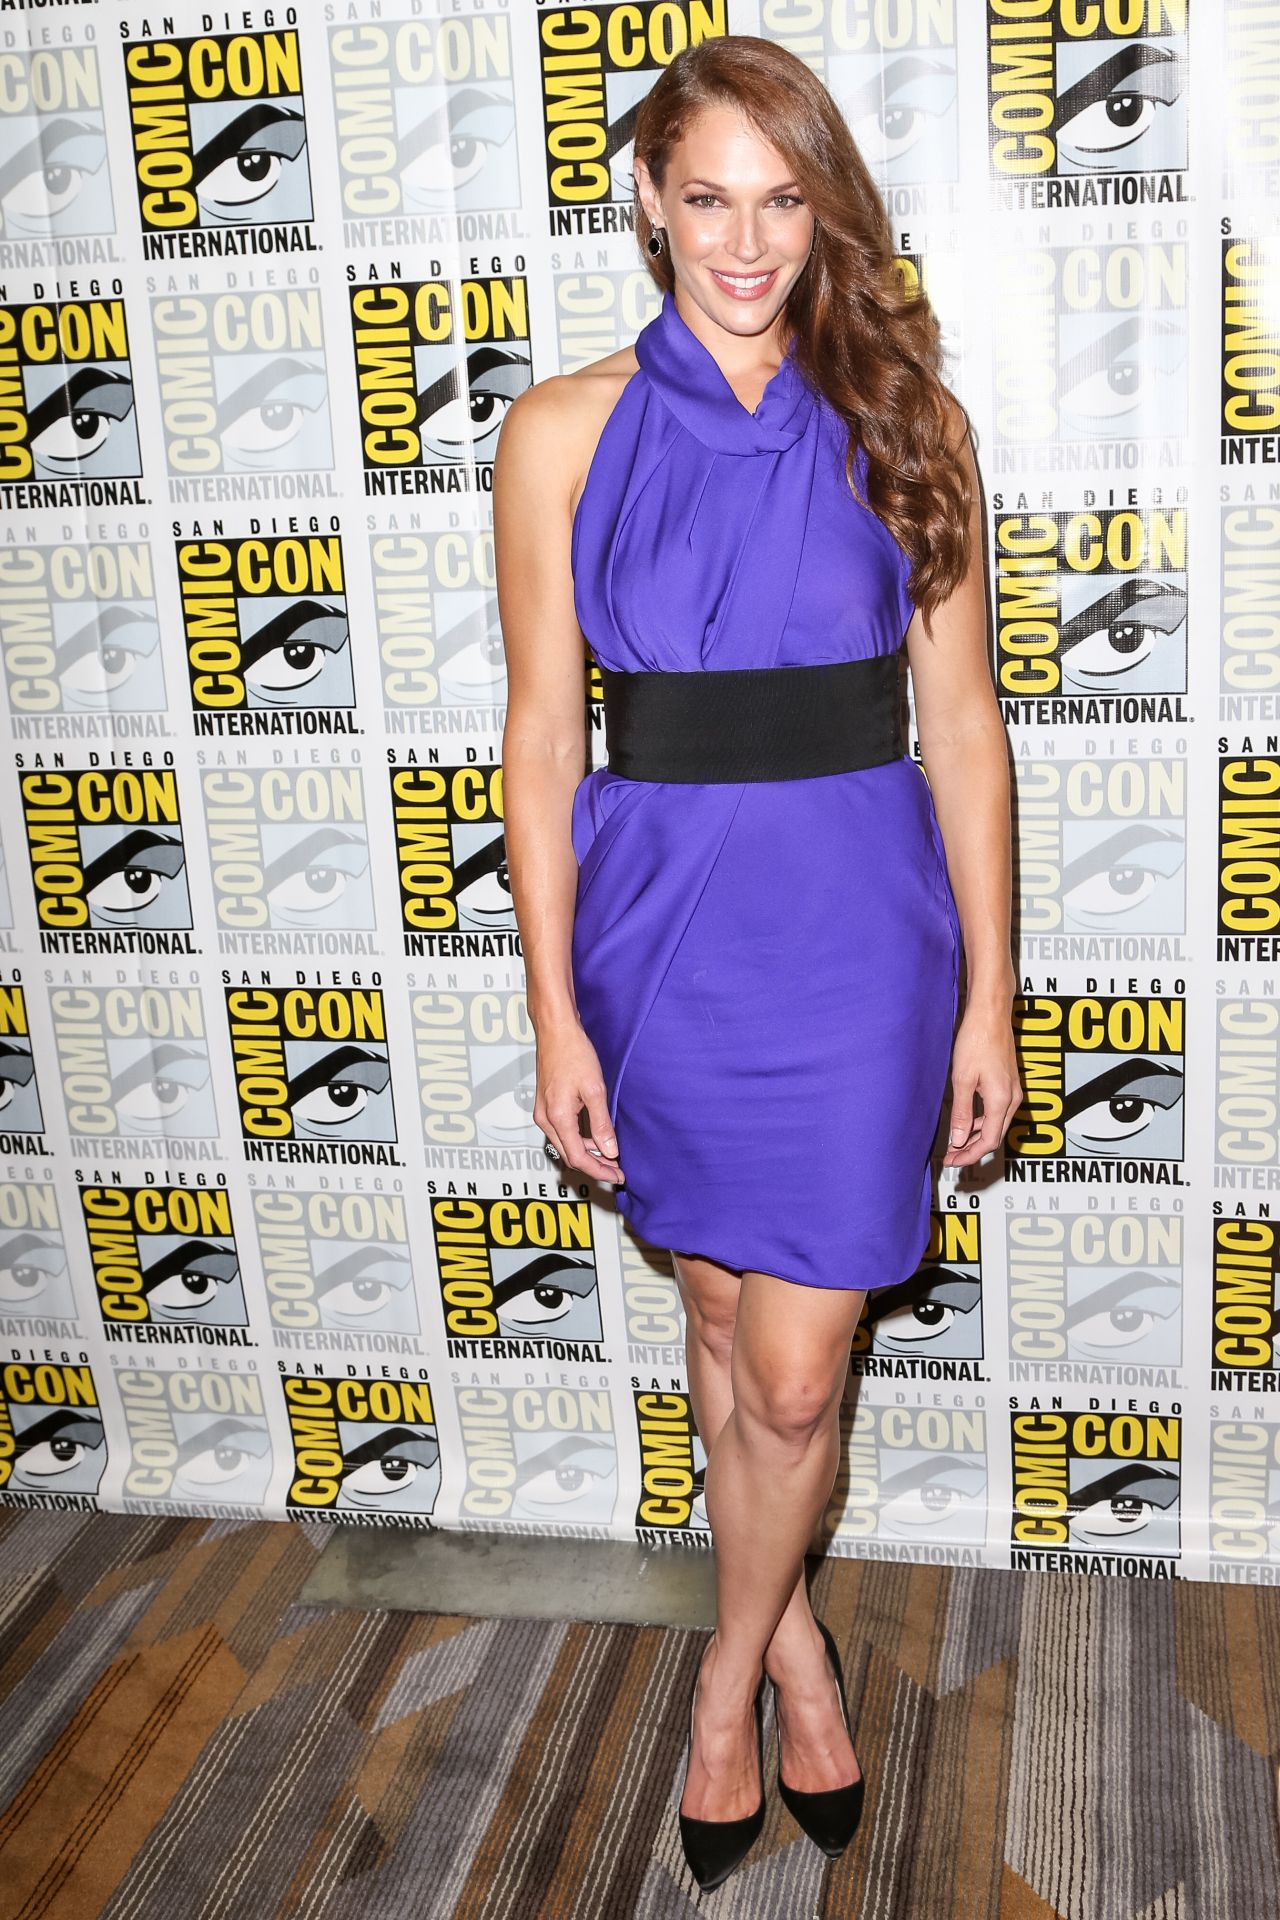 http://celebmafia.com/wp-content/uploads/2016/07/amanda-righetti-colony-press-line-at-the-san-diego-comic-con-7-21-2016-6.jpg